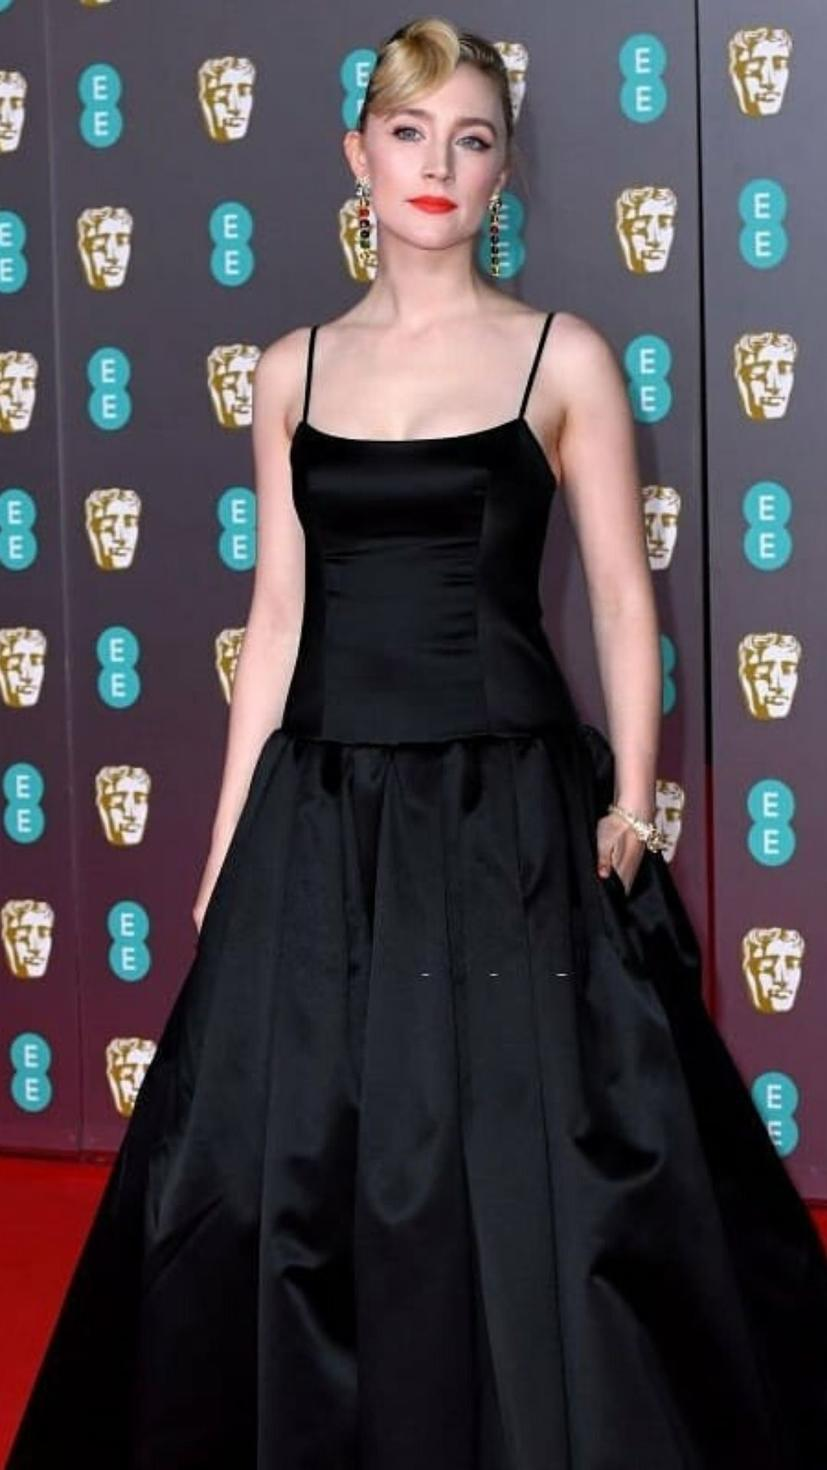 Saoirse Ronan wears a black gown and jewellery from Gucci